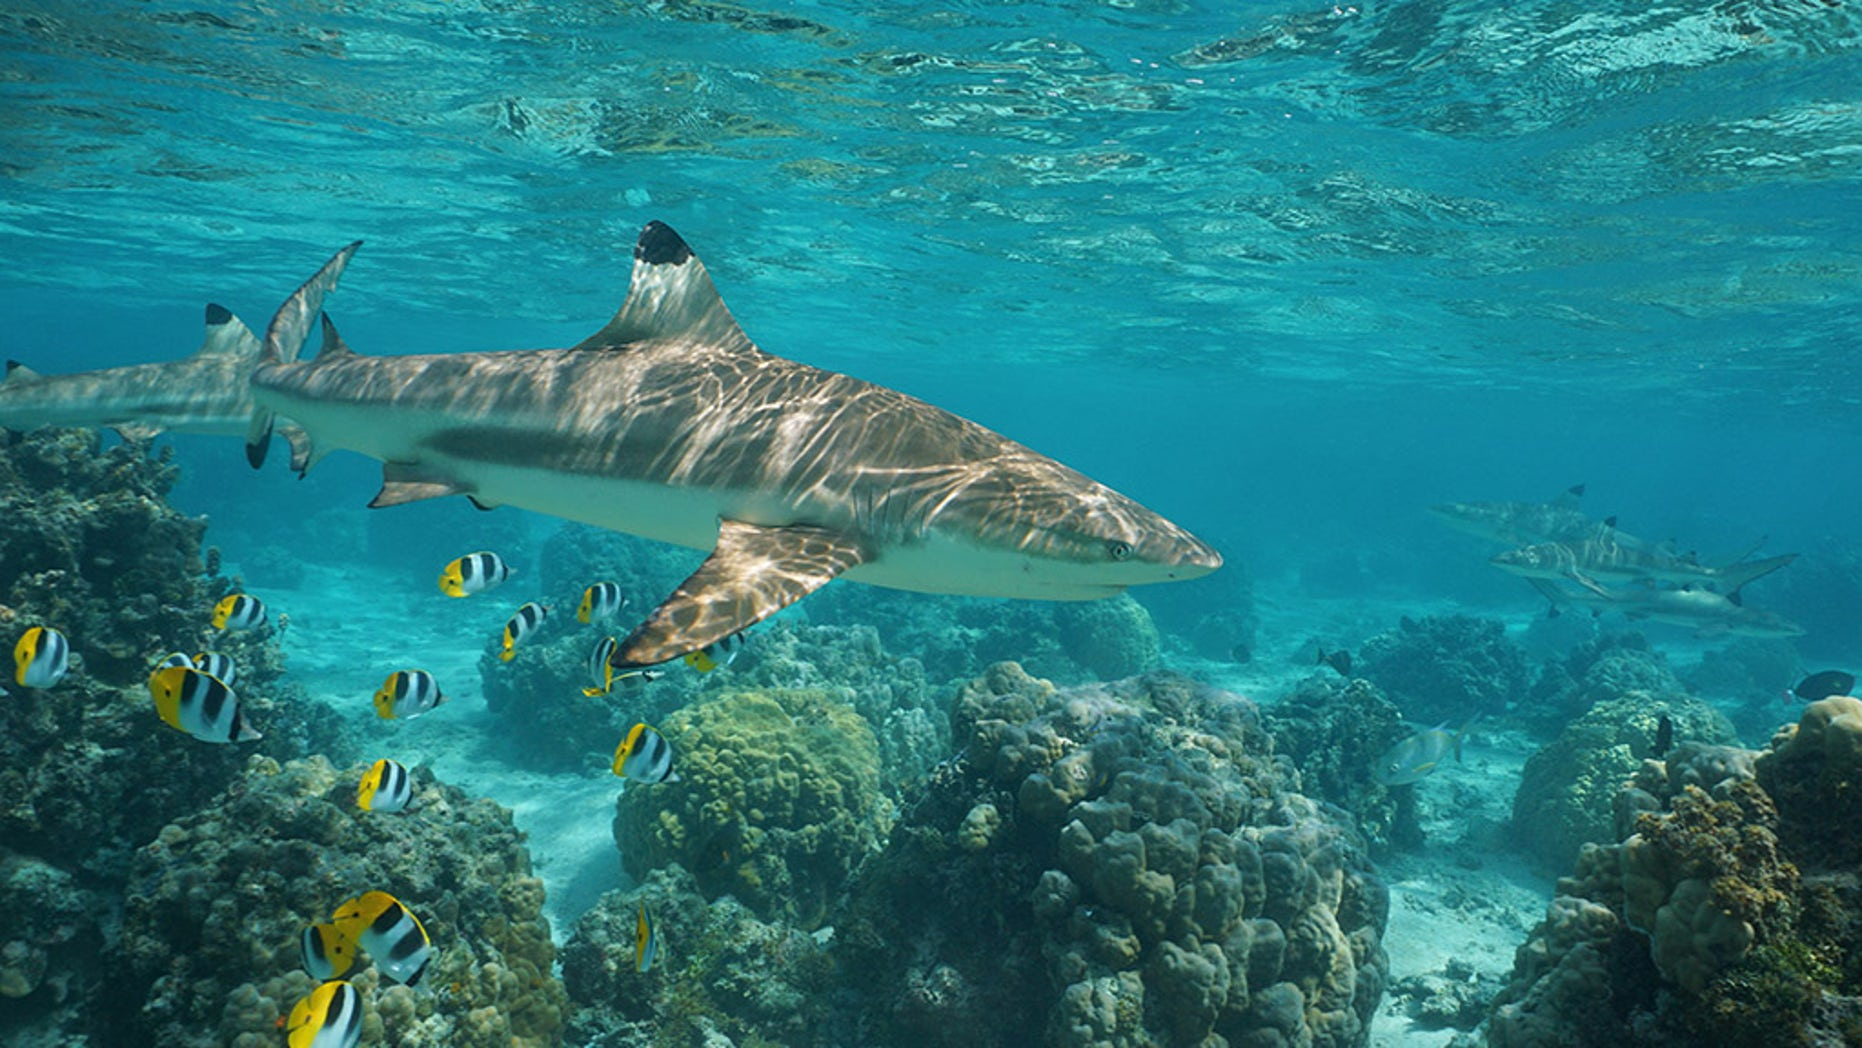 The reef shark attacked Krause's neck and head, he said.